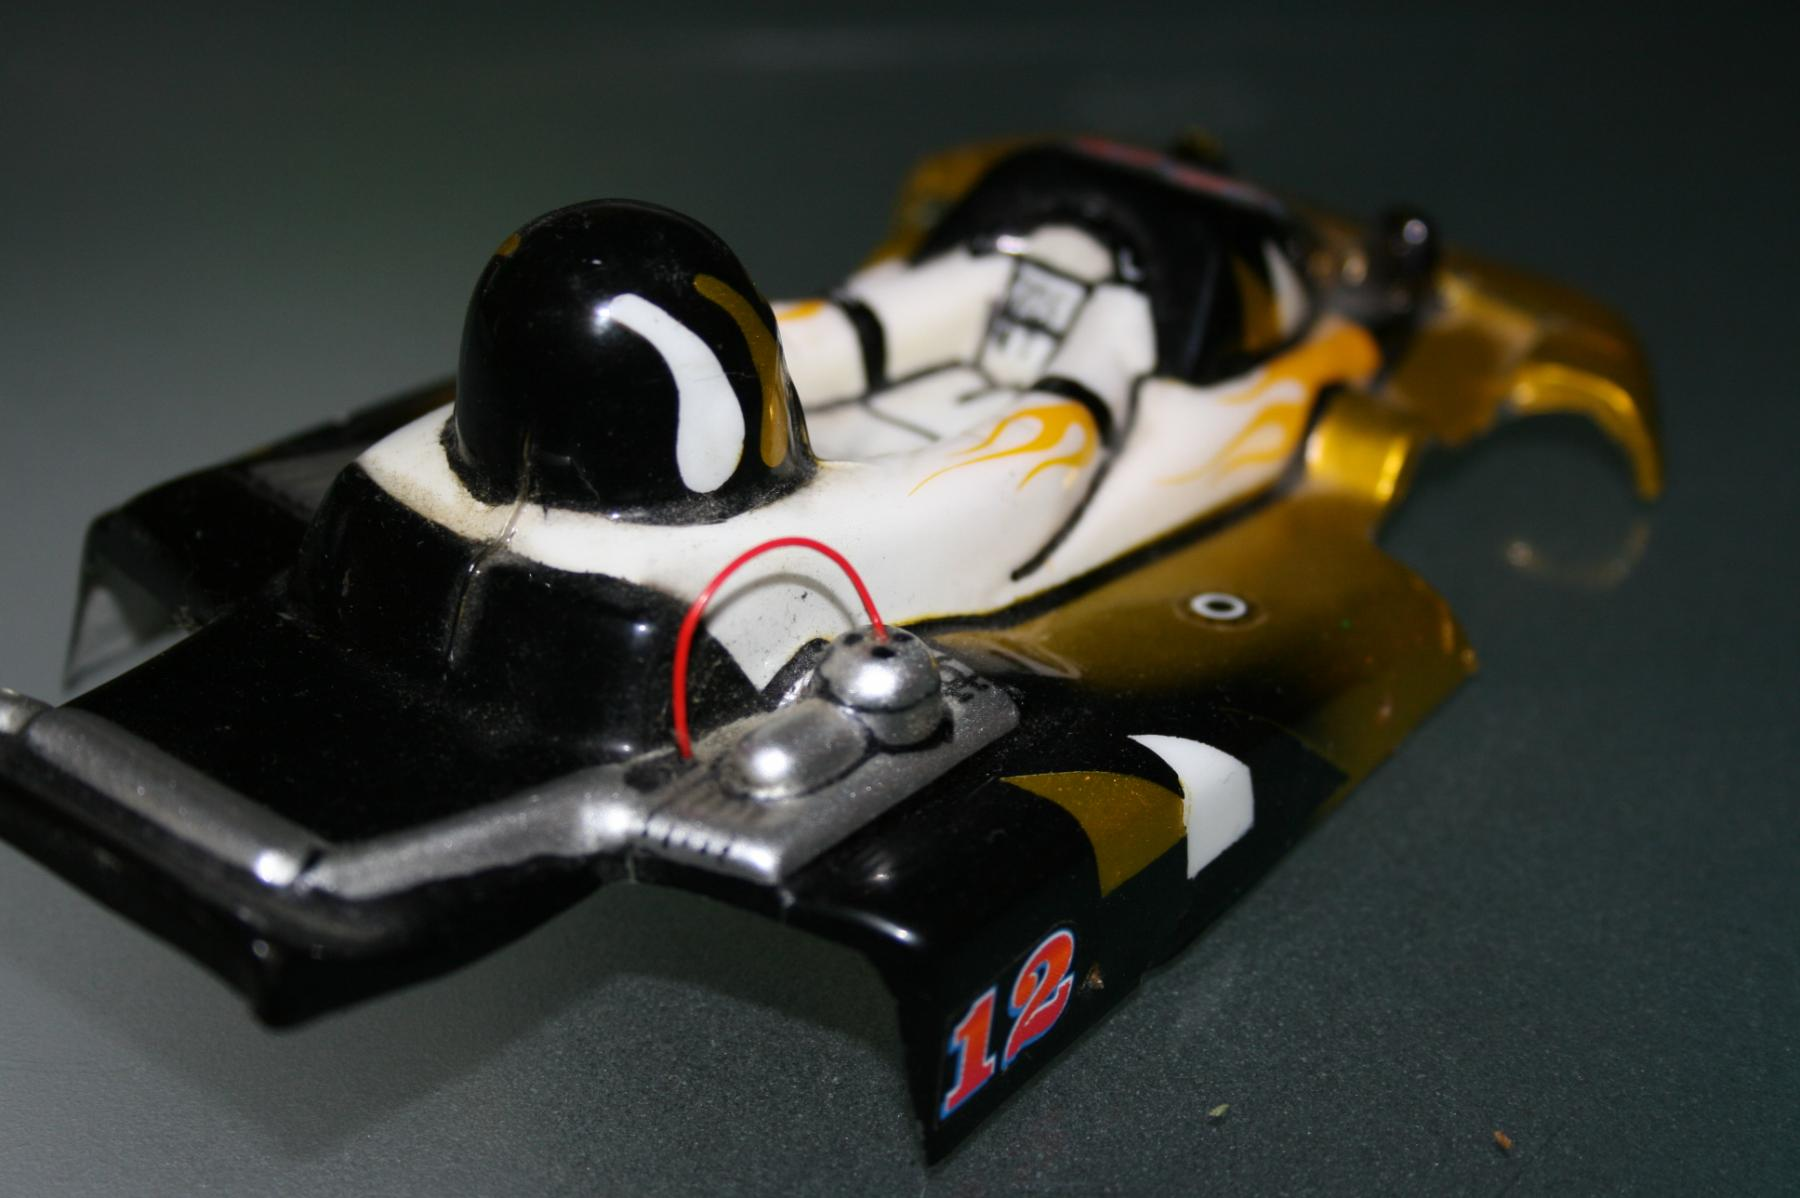 slot car pic 006.JPG